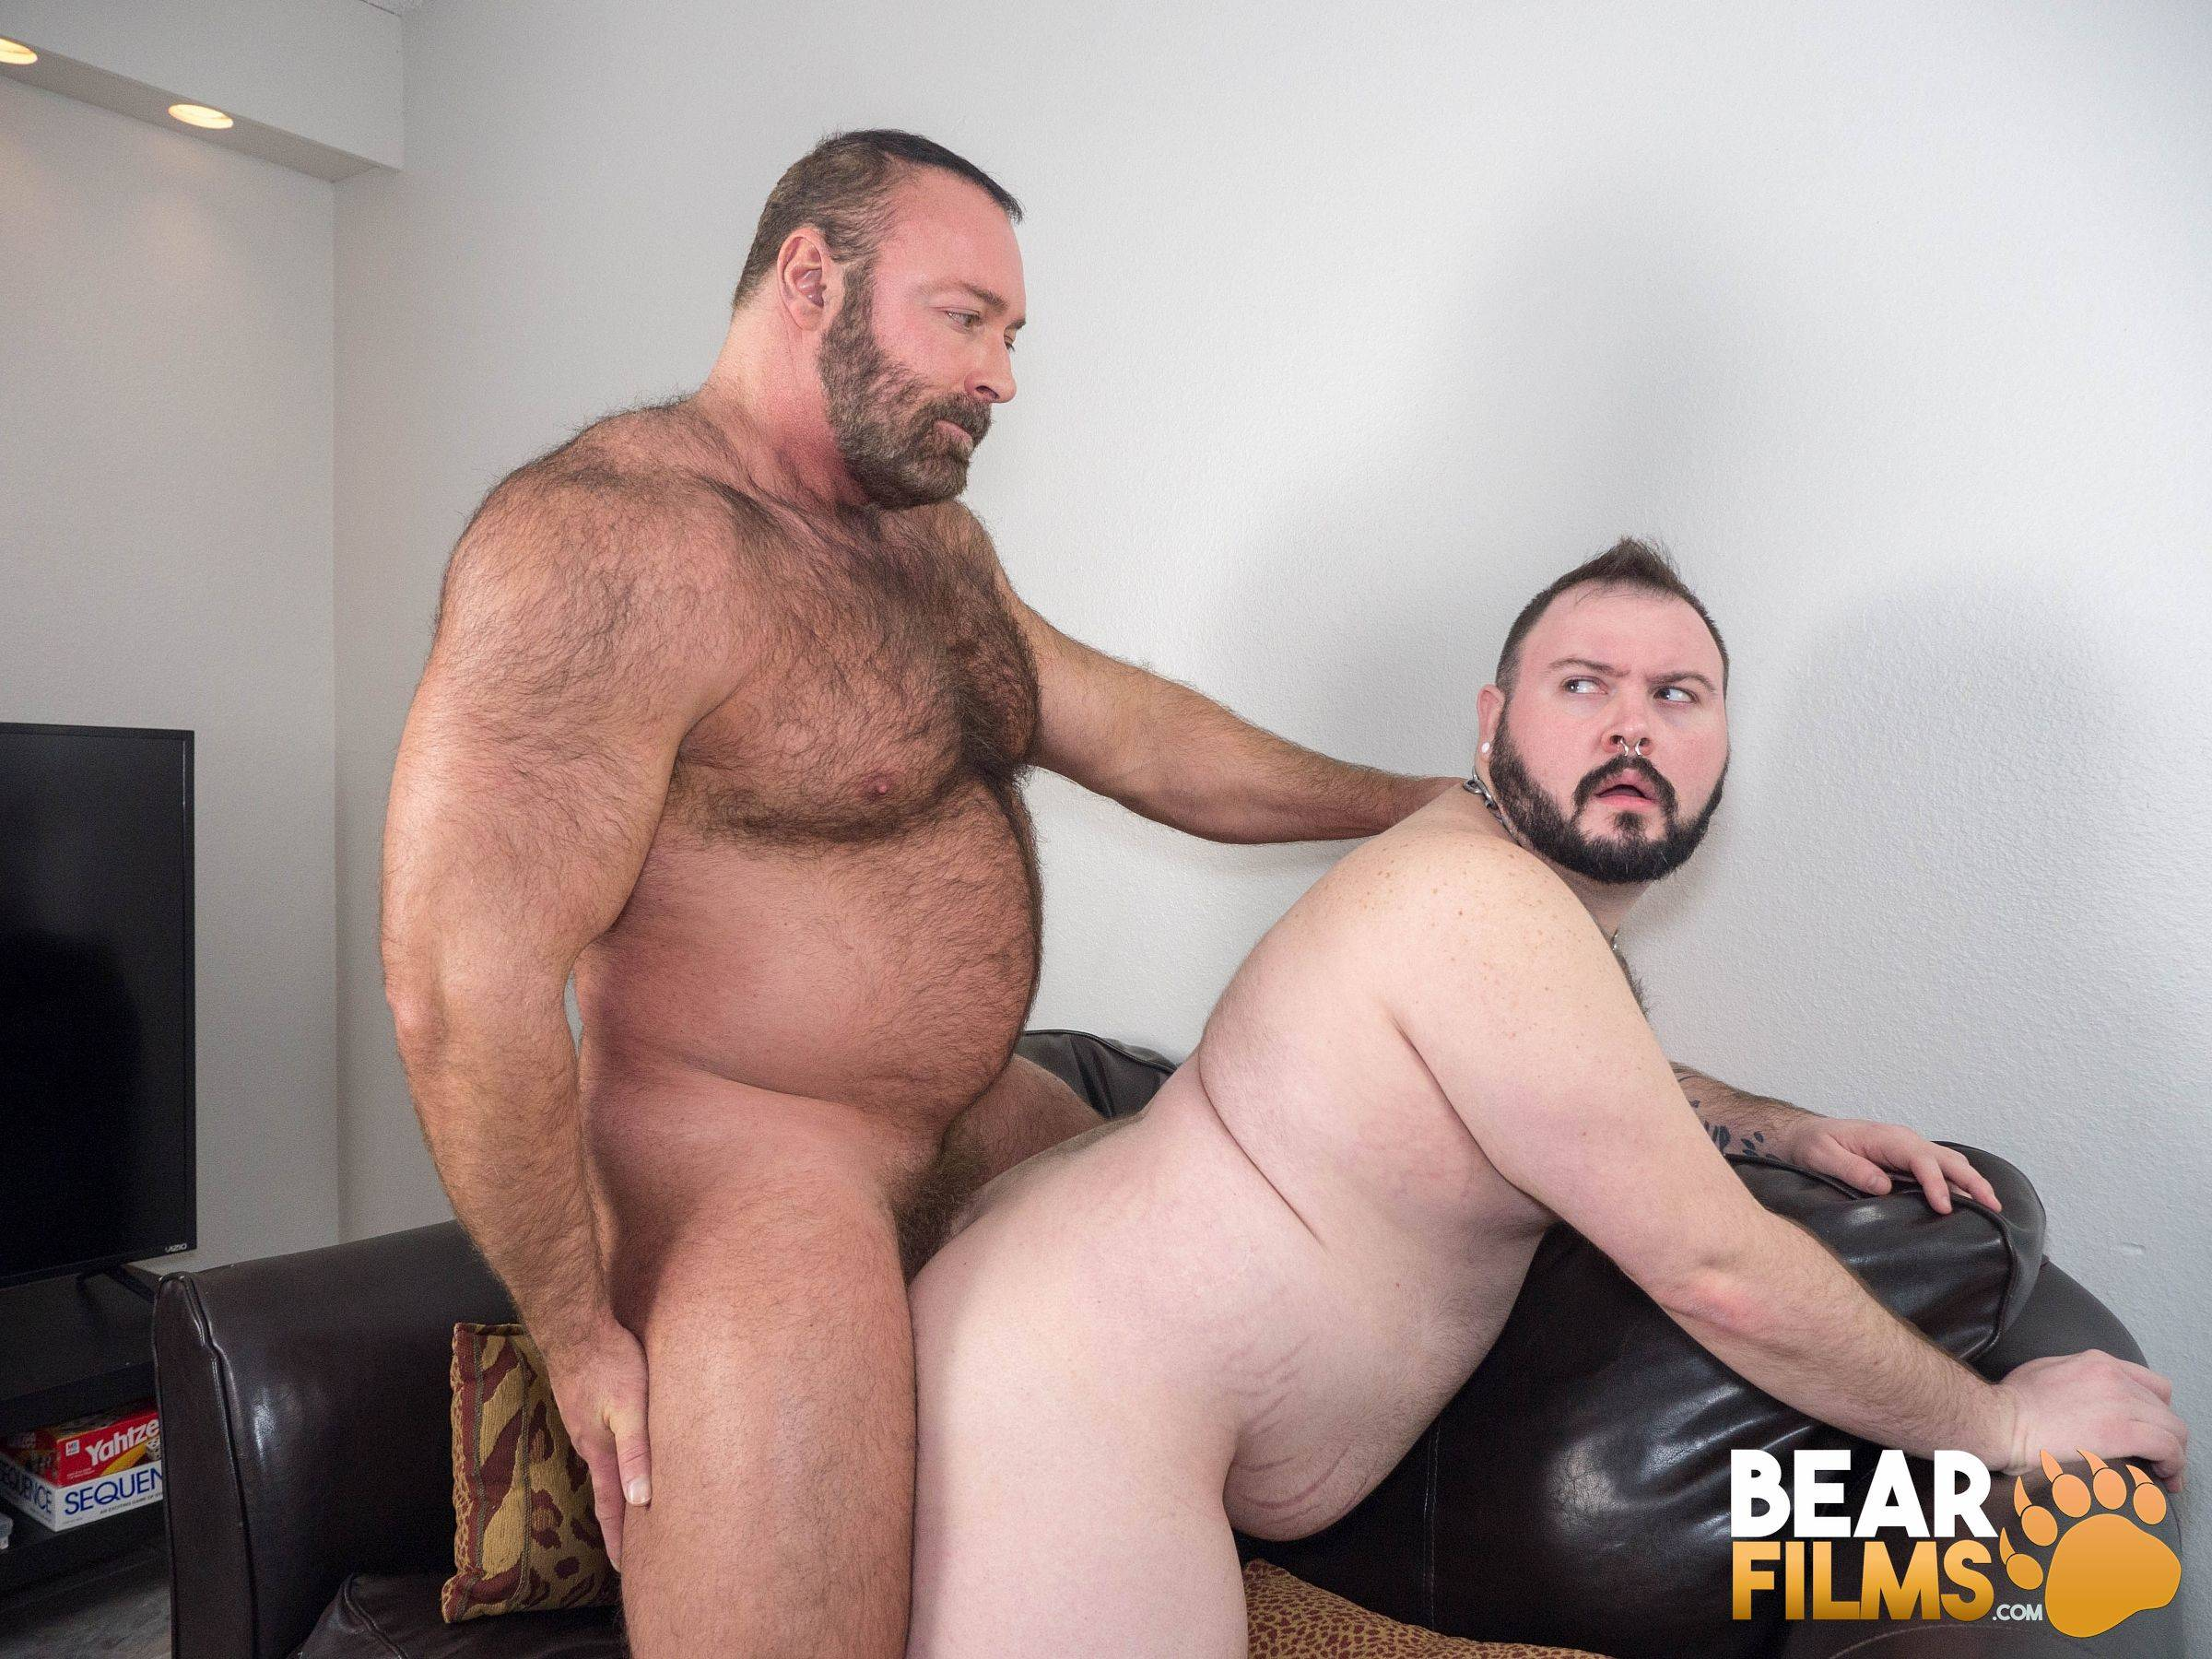 Beargaysvideos Porno bear films: roadside pickup | gaymobile.fr